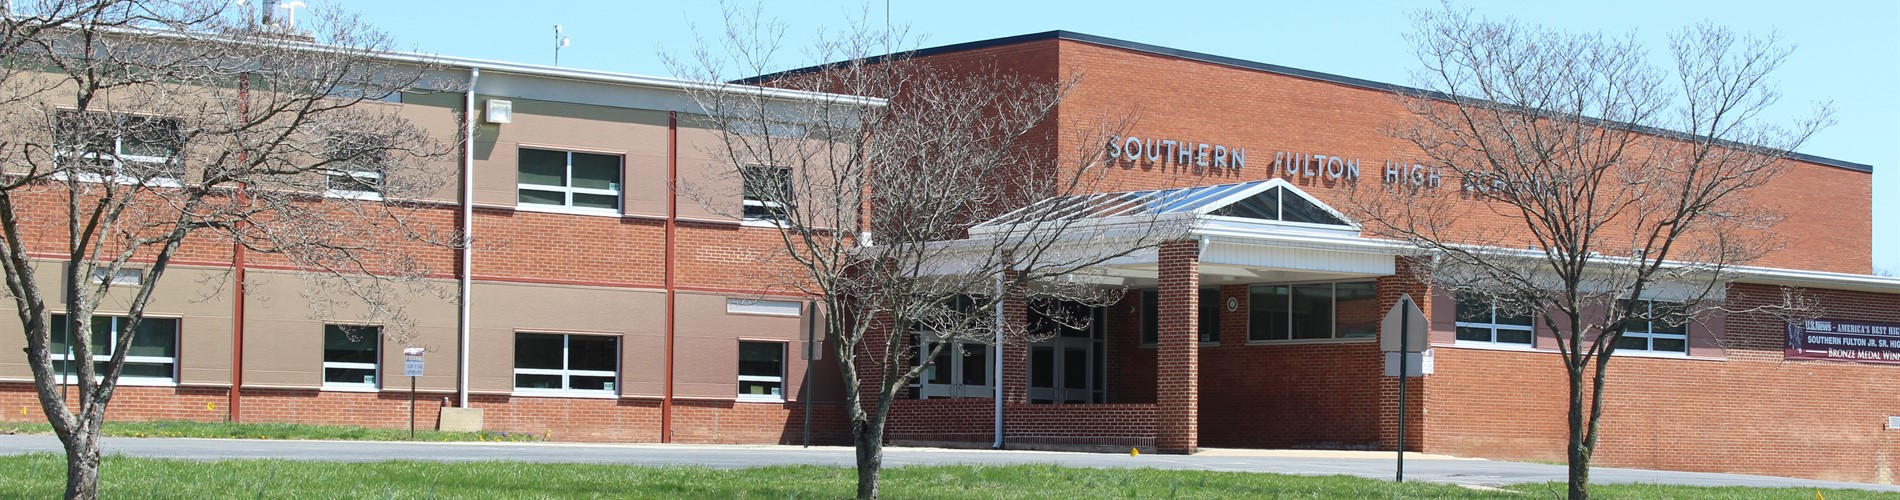 Southern Fulton Jr/Sr High School Building